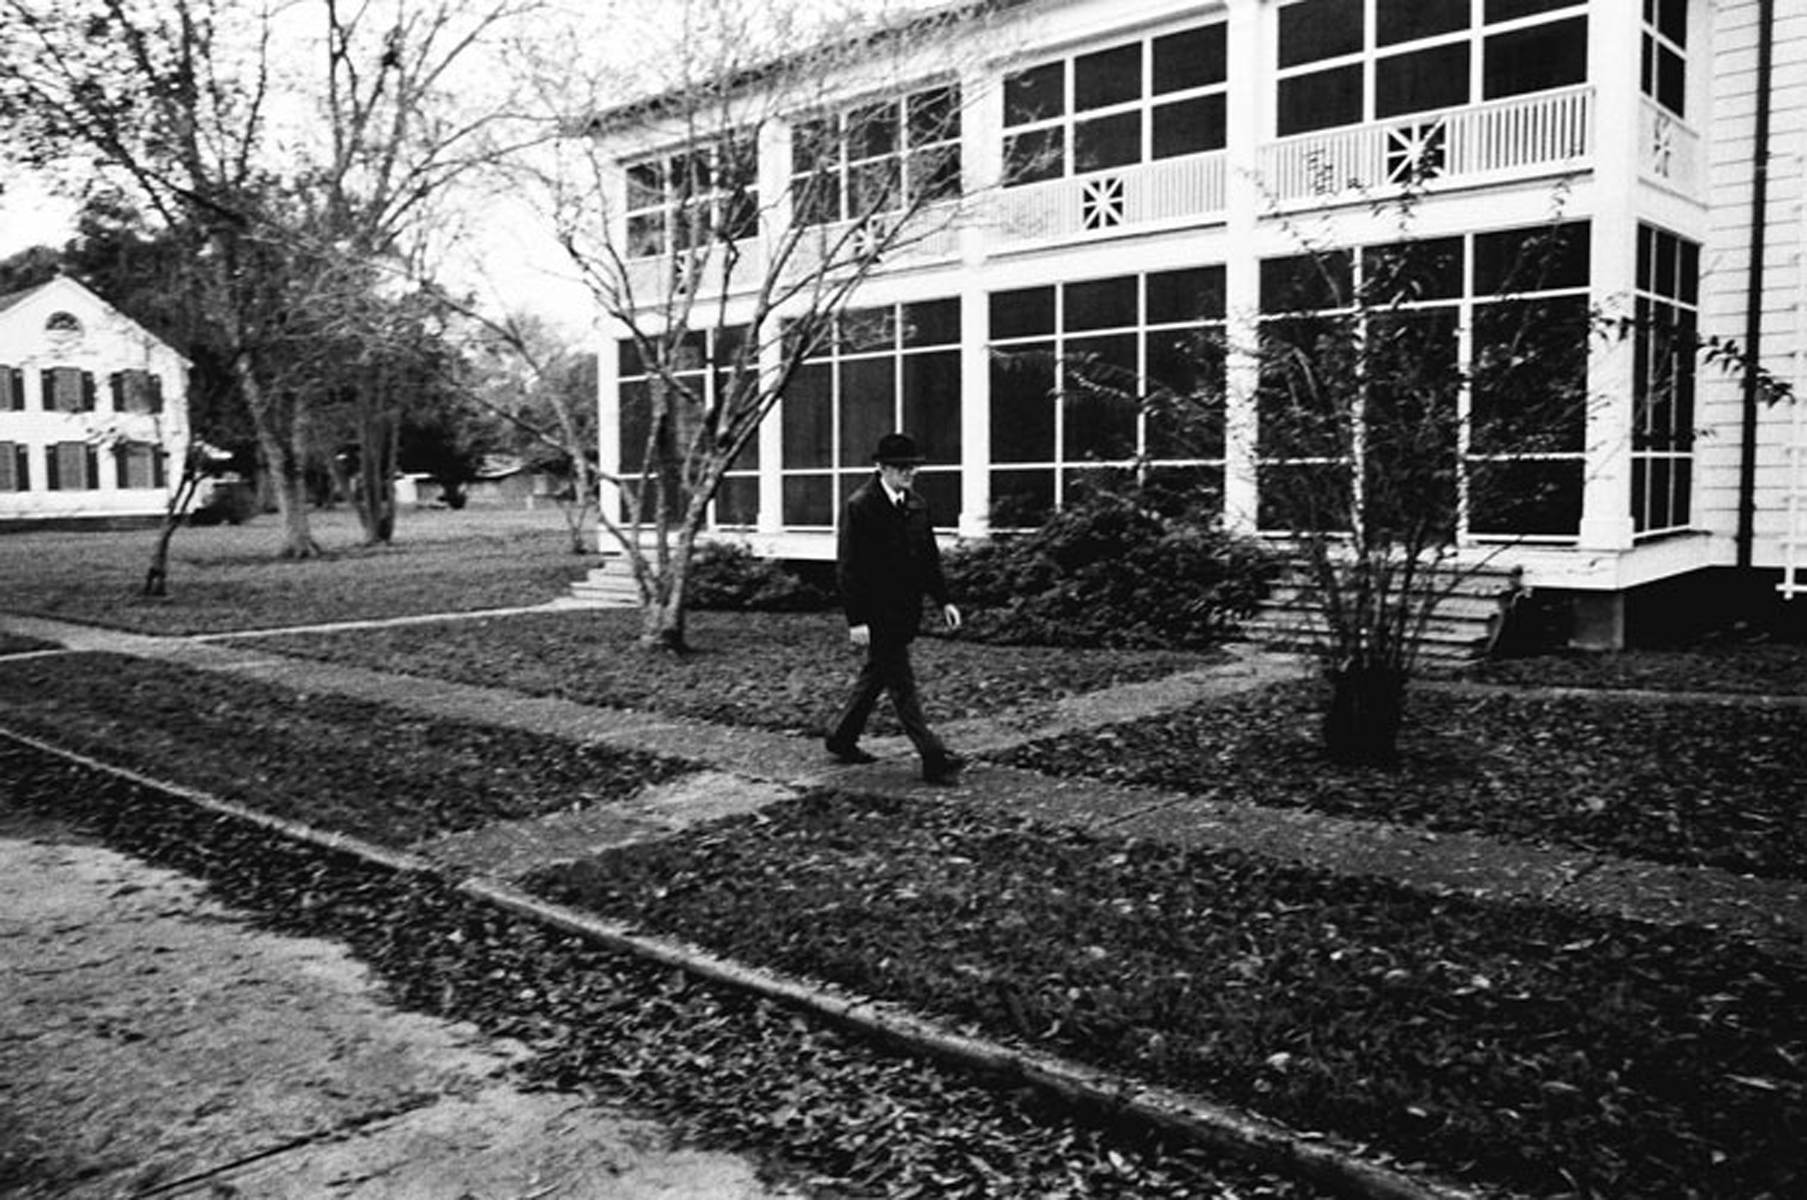 Dr. Clemens, who lives on the grounds of the Leper Colony, walks a few minutes to his office to begin his day.